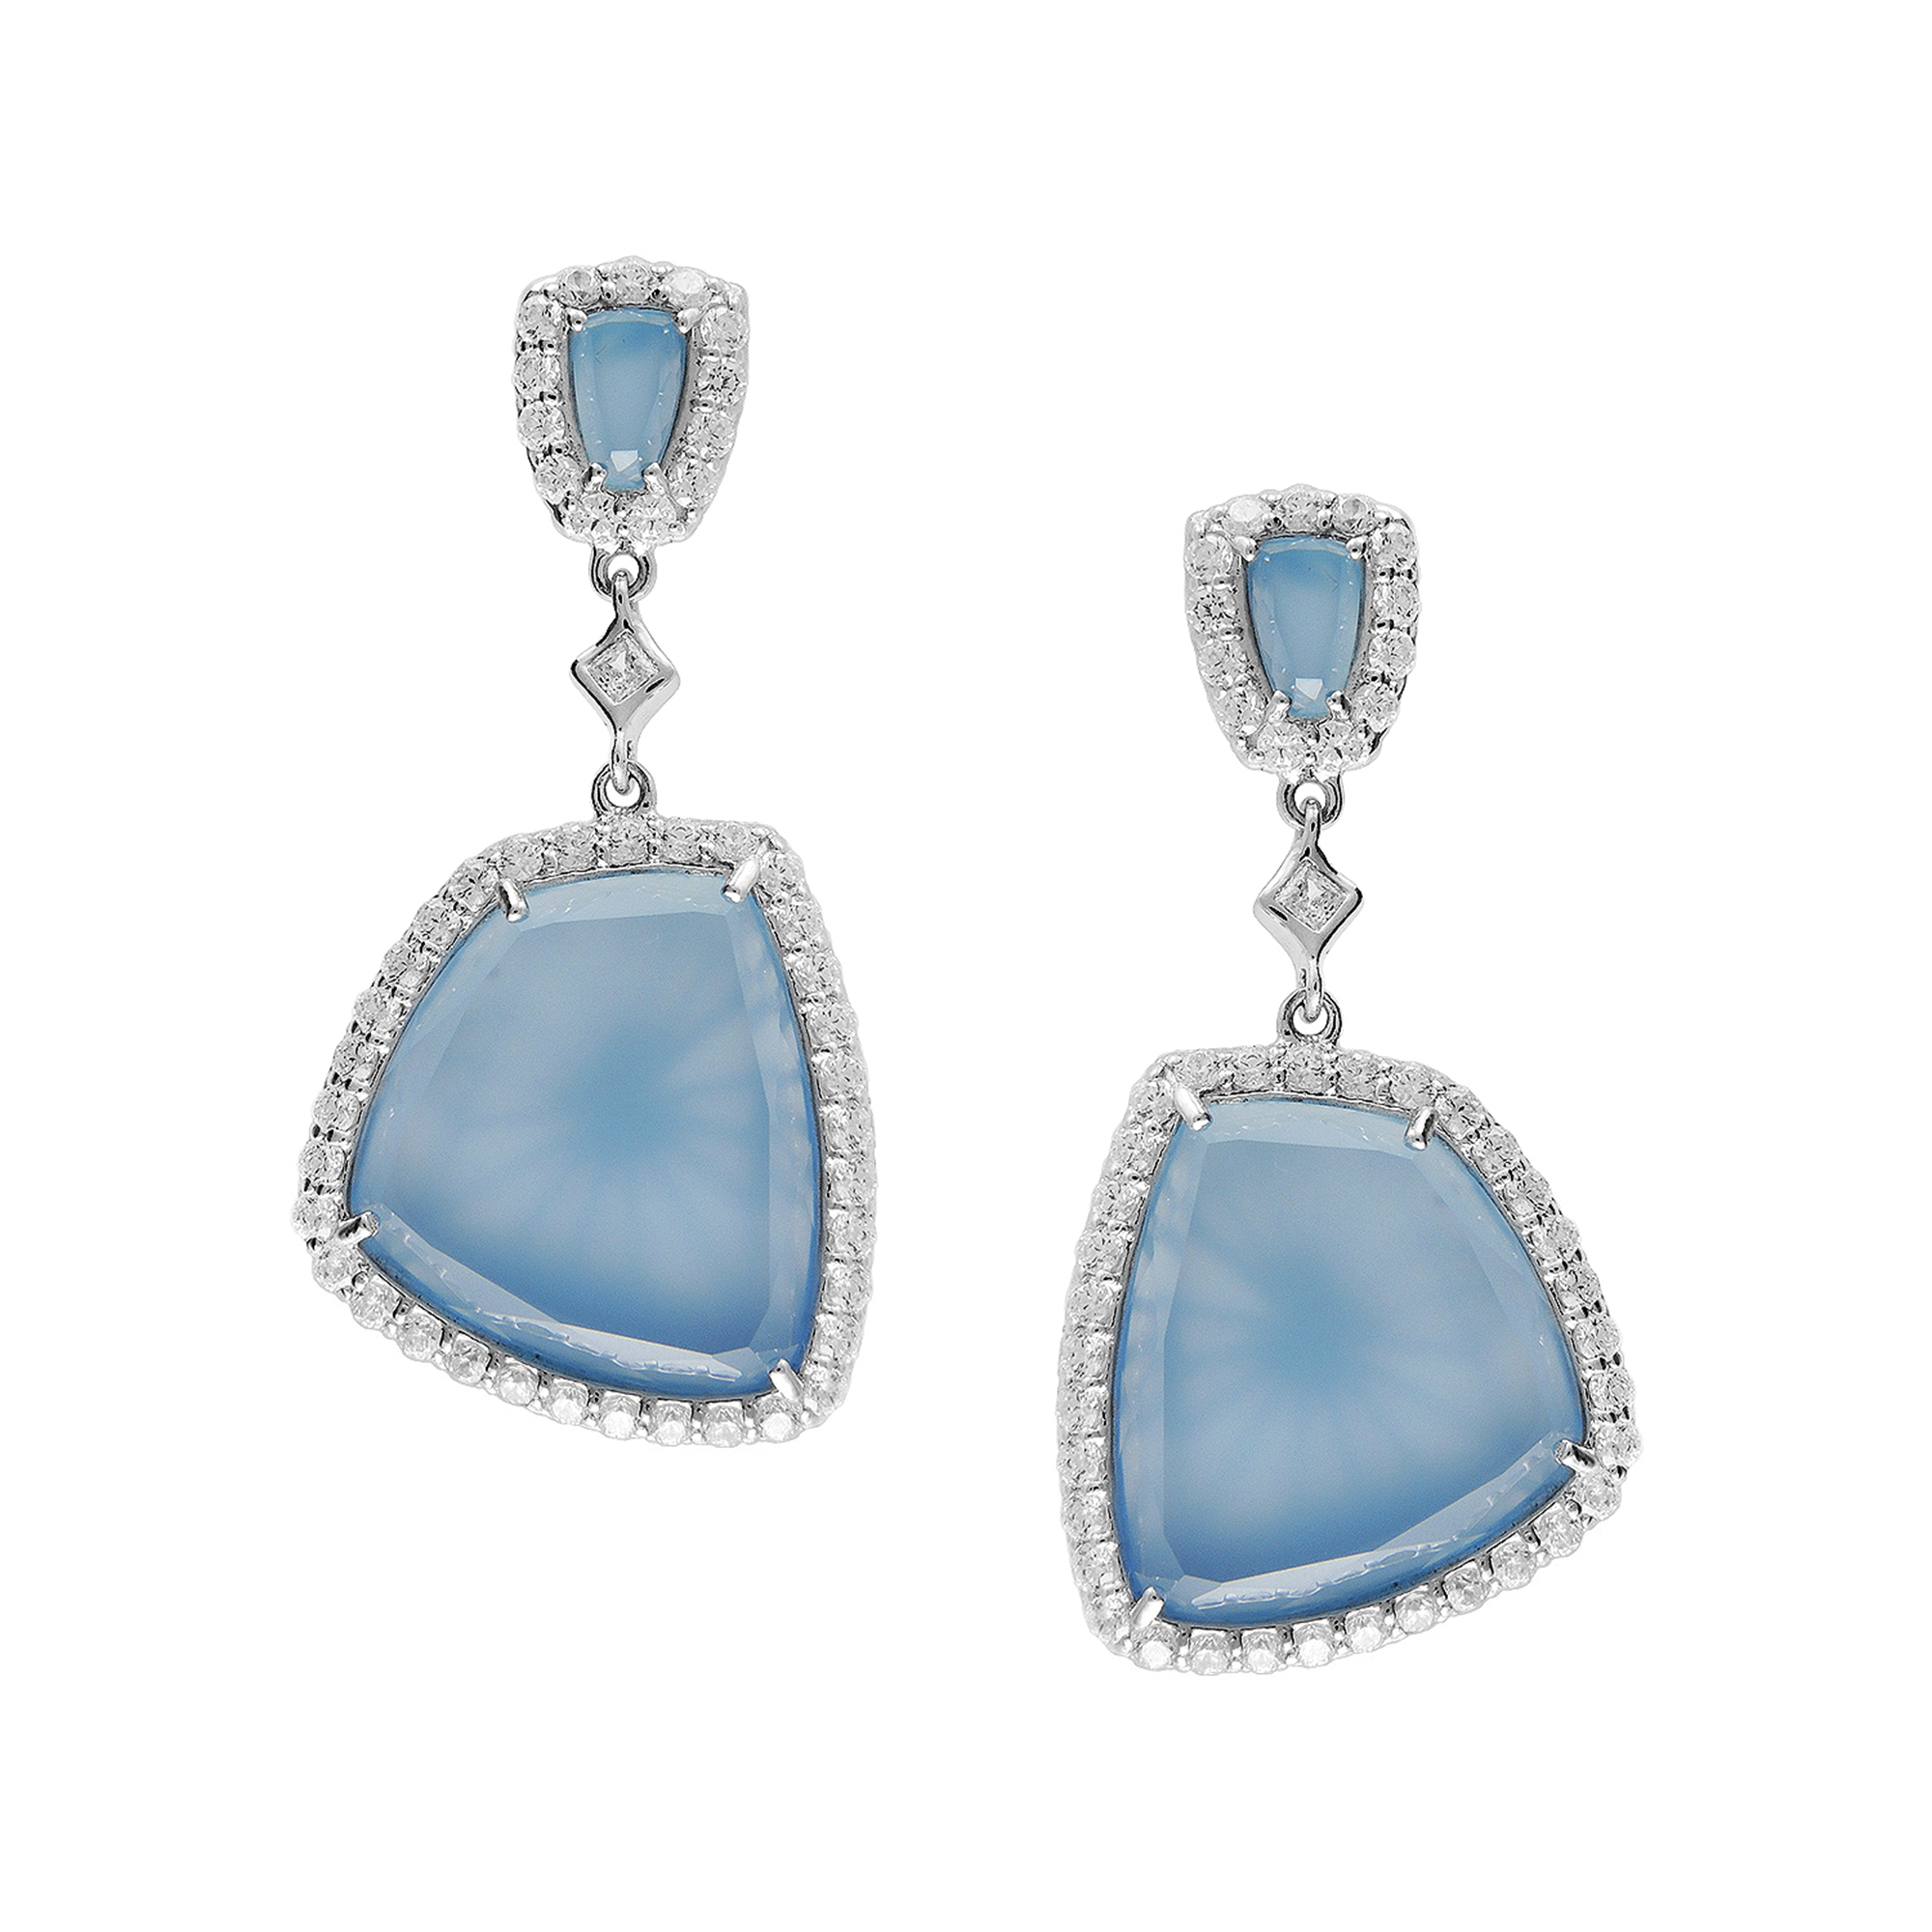 Sterling Silver Earrings Set With Blue Chalcedony accented with White CZ by TJM